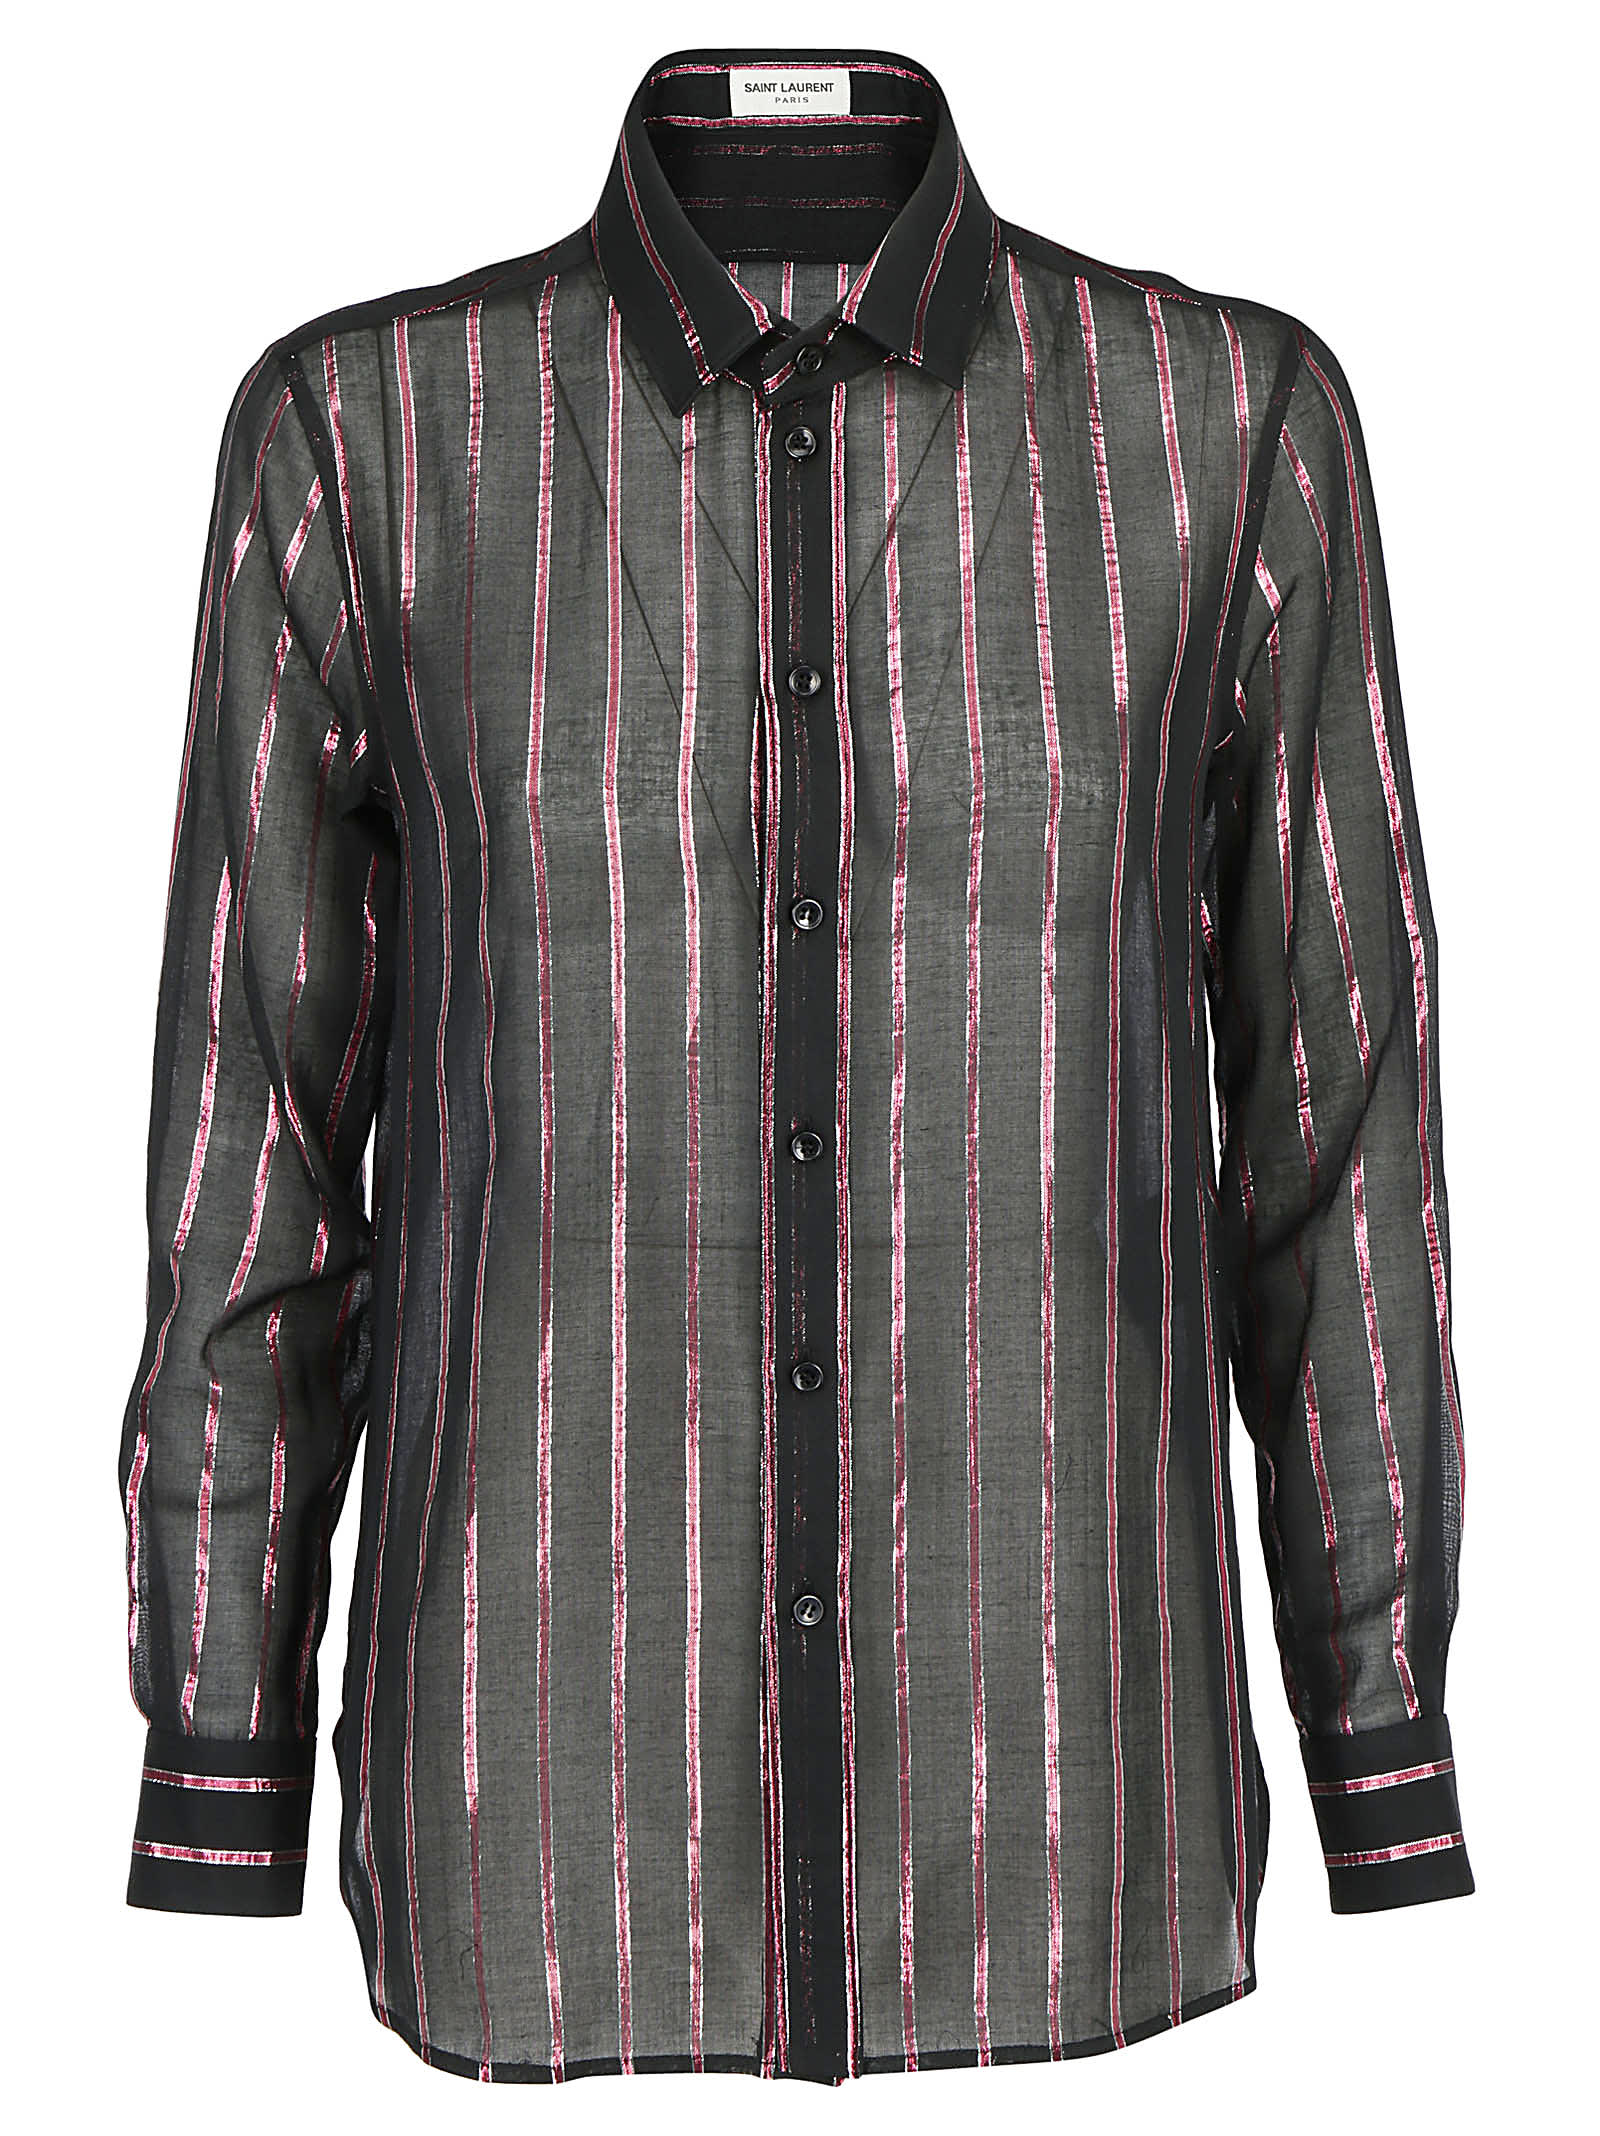 Saint Laurent Shirt